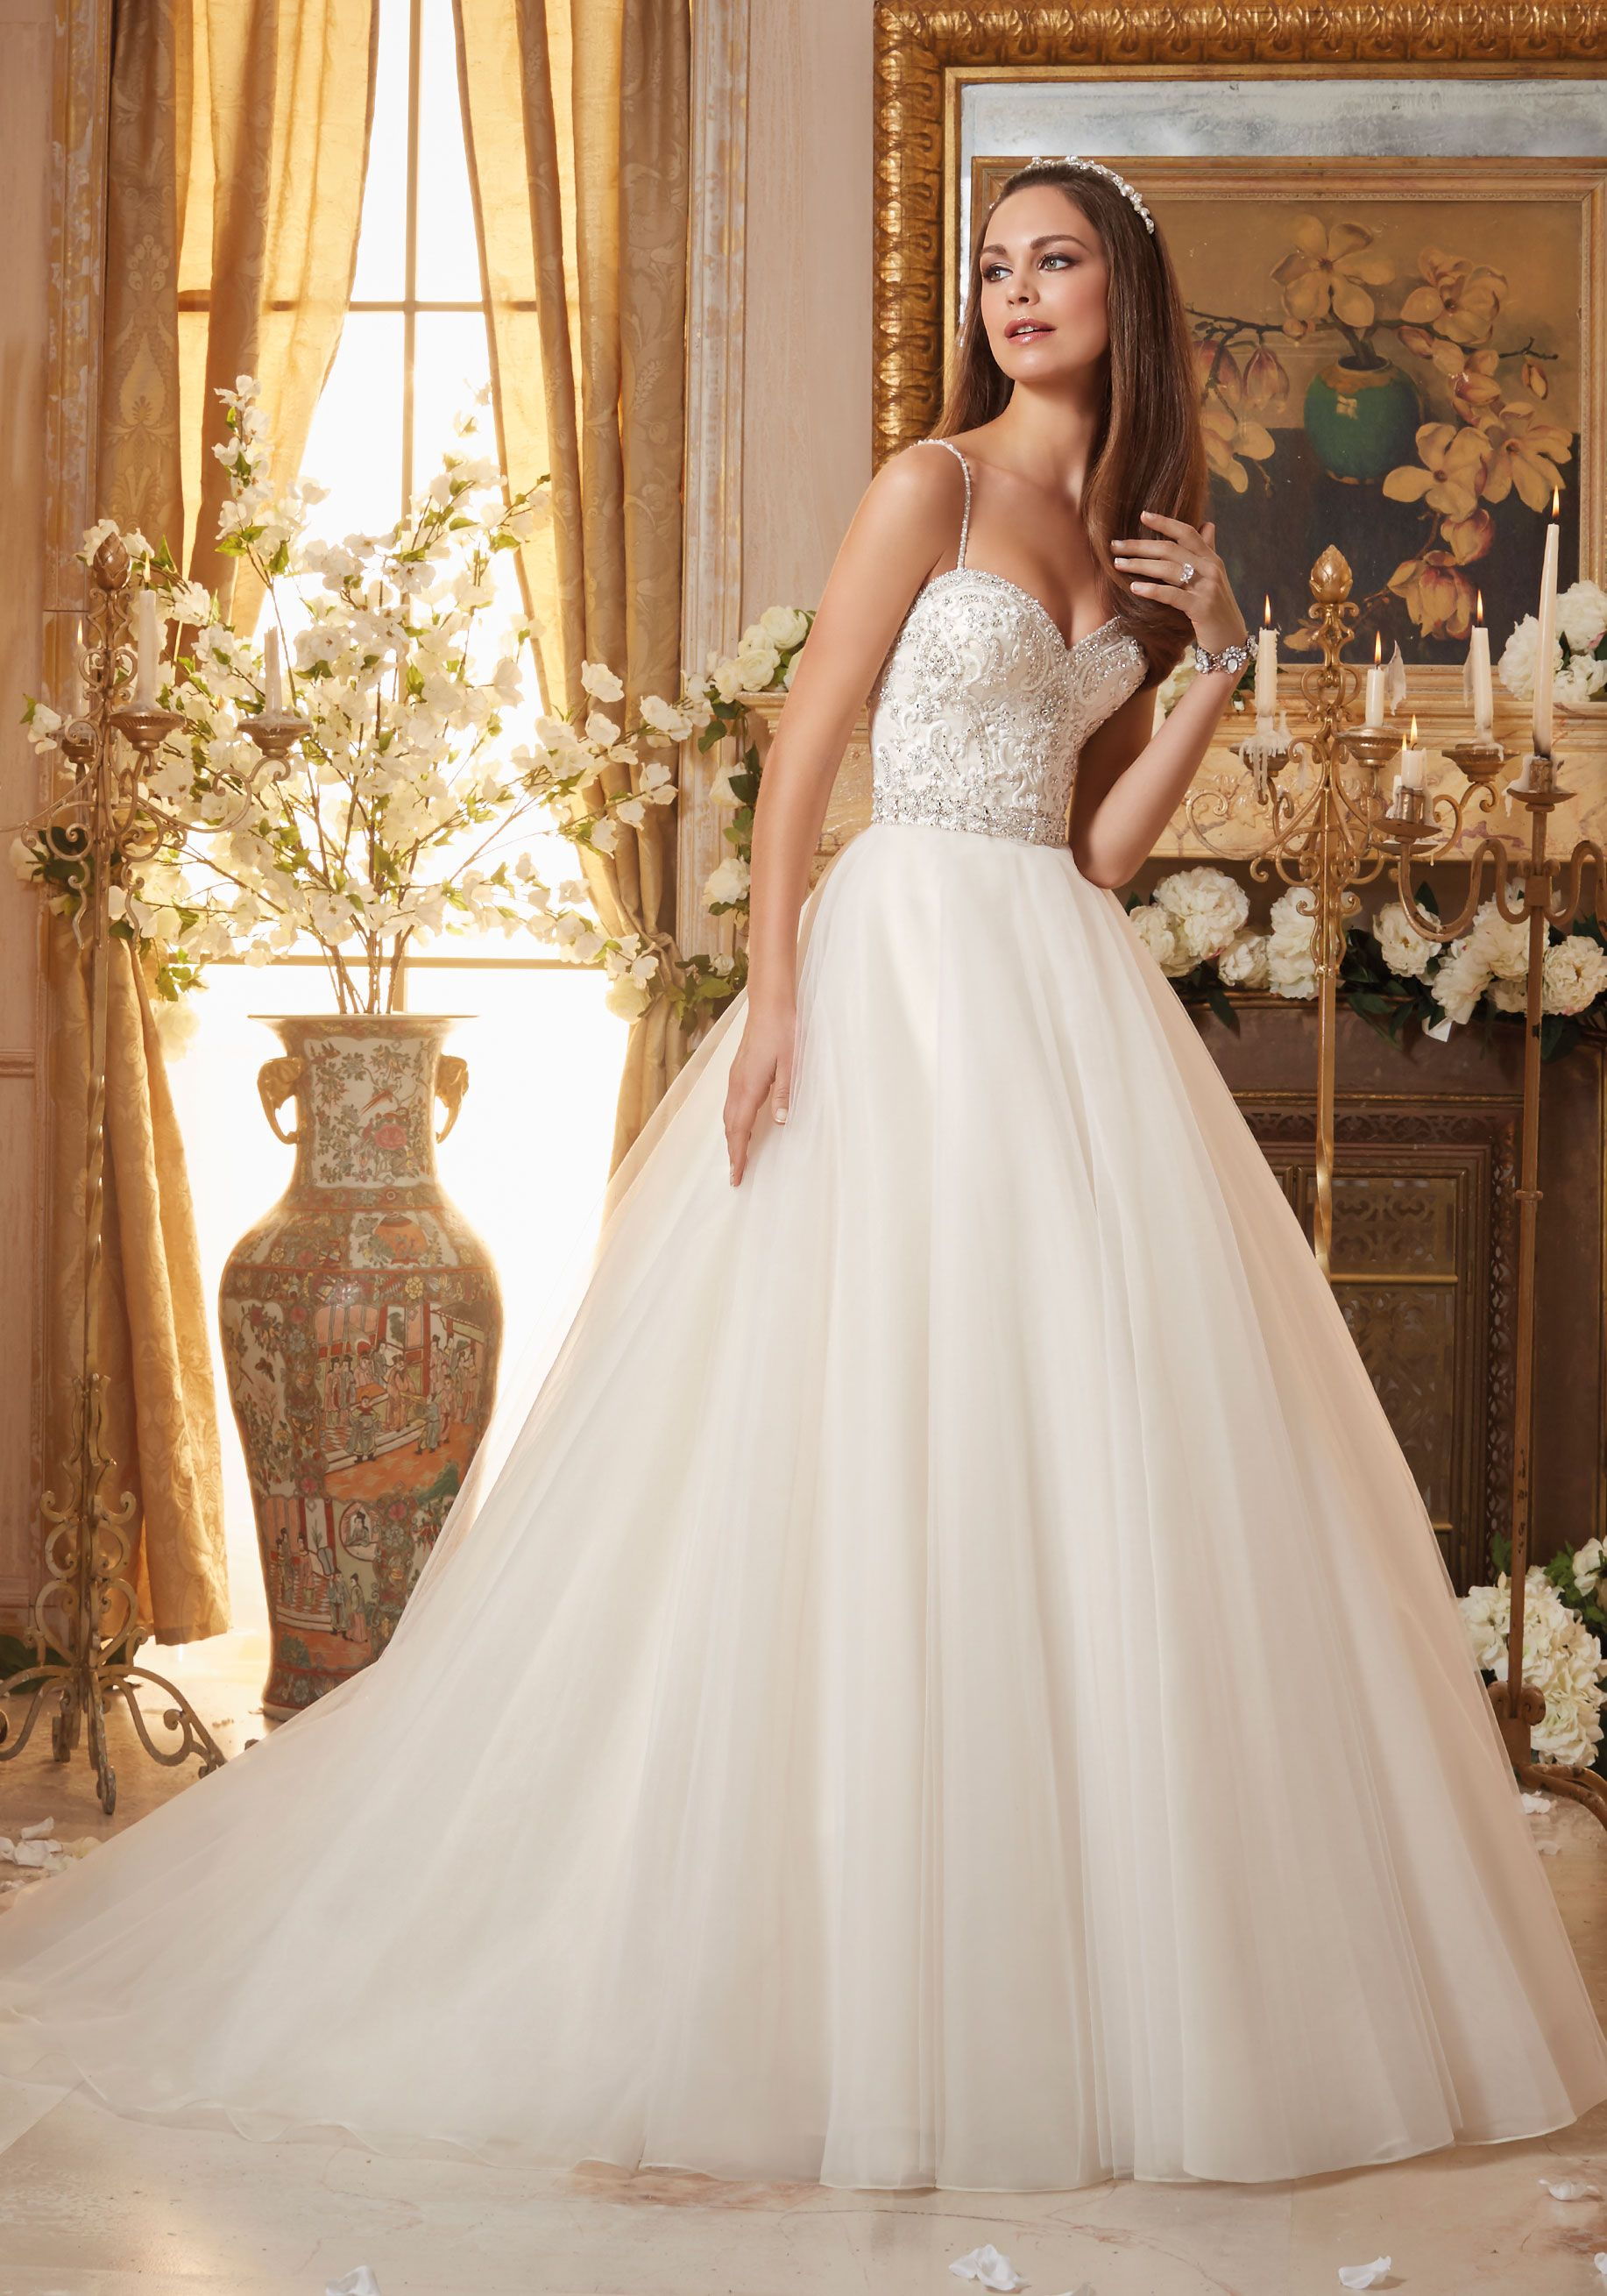 Beaded spaghetti strap wedding dresses  Crystal Beaded Embroidery on Circular Tulle Ball Gown Wedding Dress